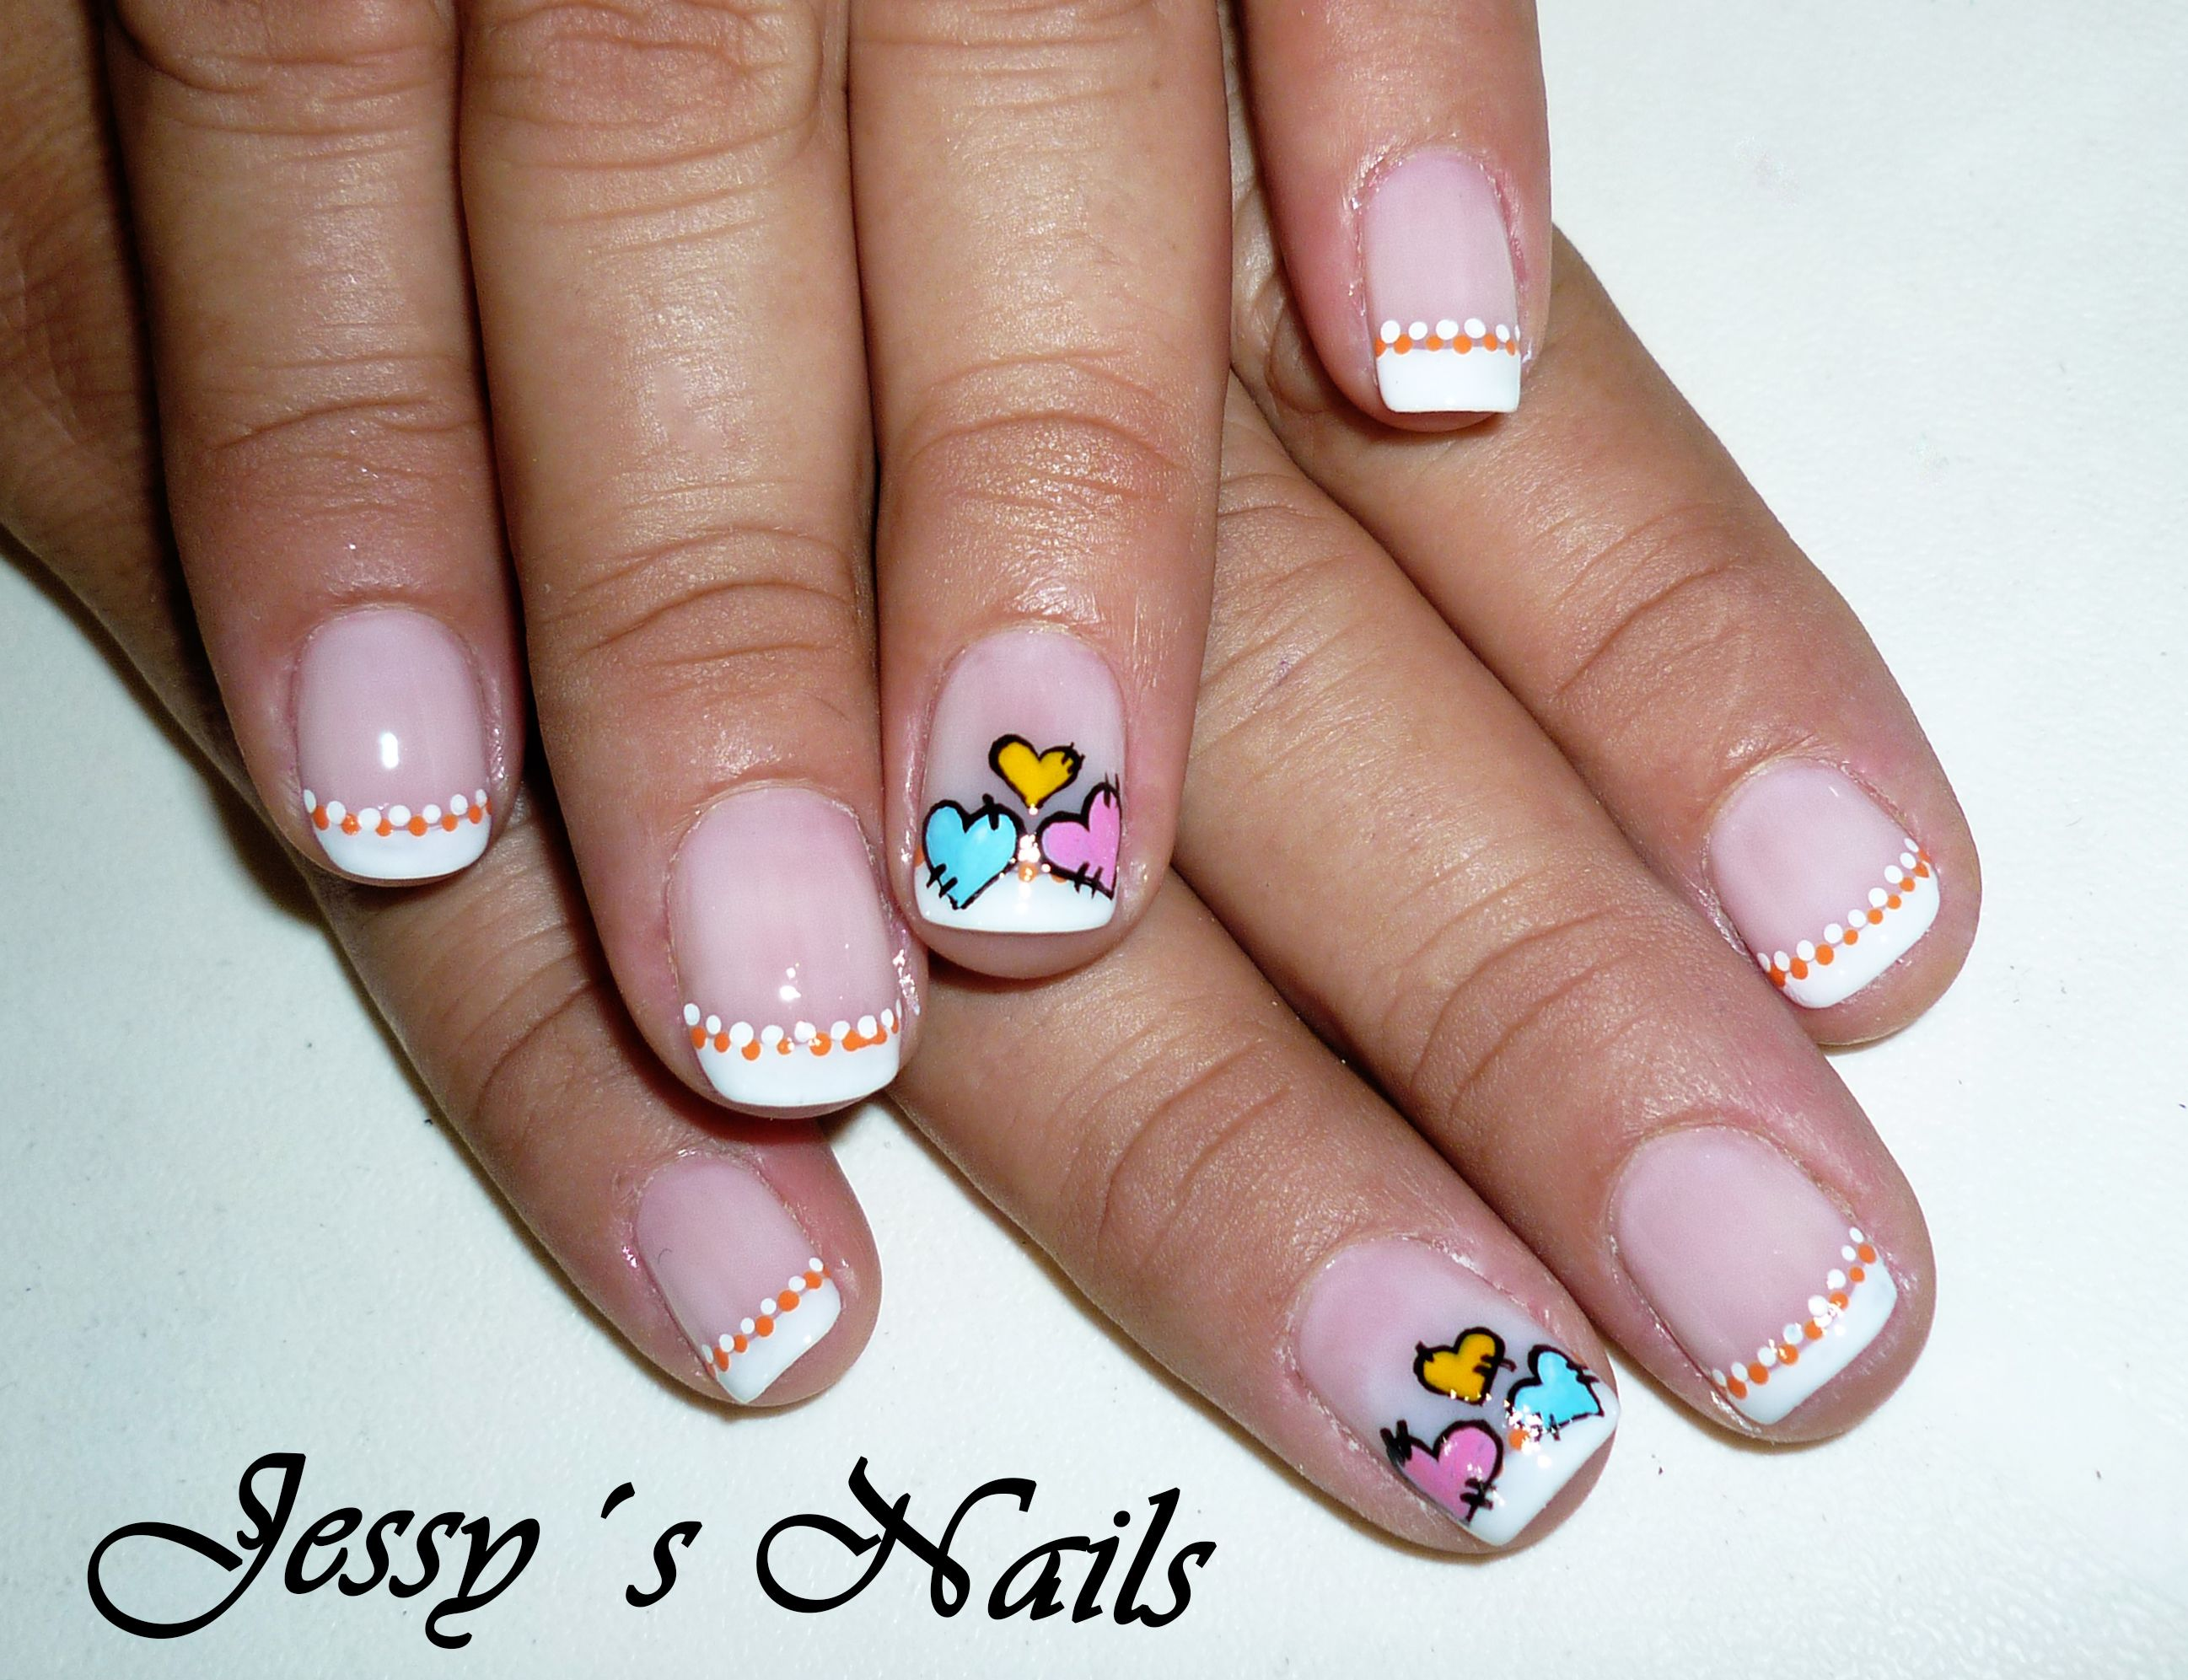 Uñas Decoradas Con Corazones Y Puntos Pretty Nails Pinterest